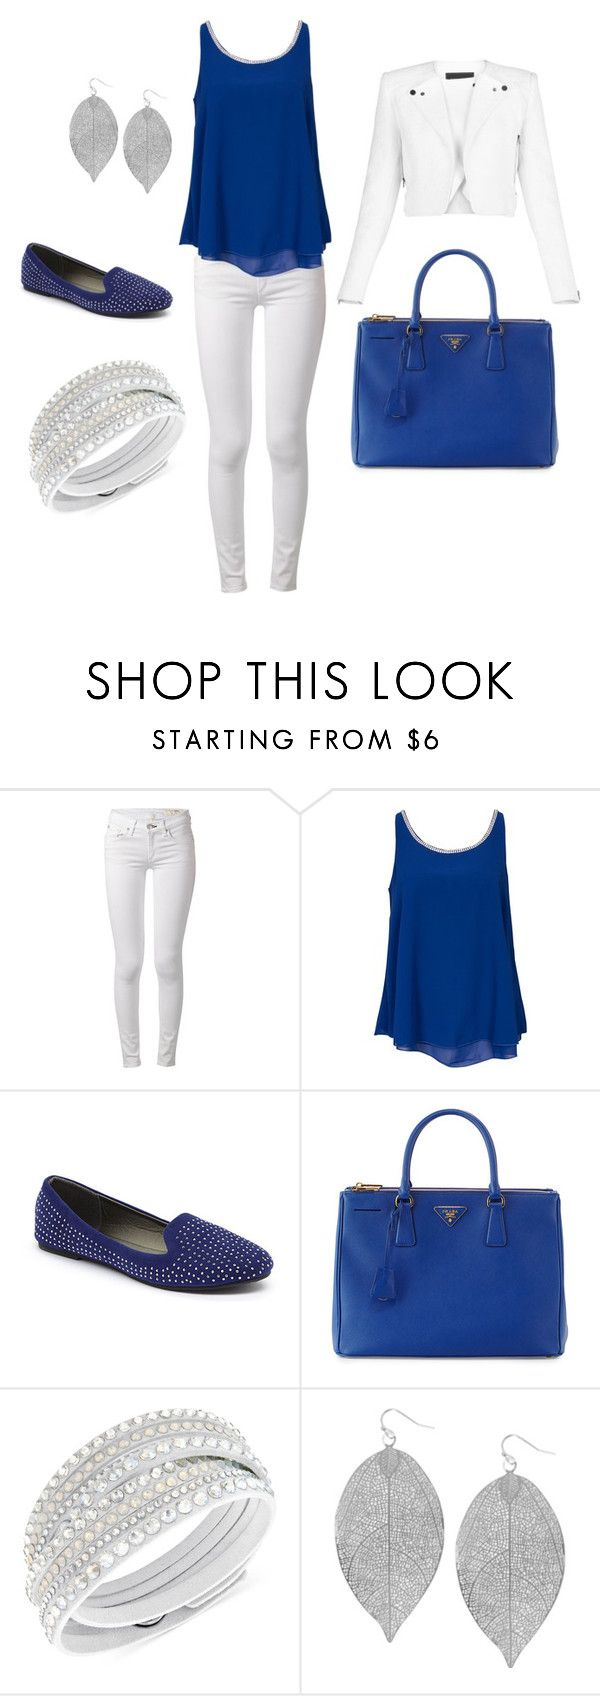 """""""Once in a blue moon"""" by amanda-j-burke on Polyvore featuring rag & bone, Sisters Point, Ositos Shoes, Prada, Swarovski, Humble Chic and BCBGMAXAZRIA"""